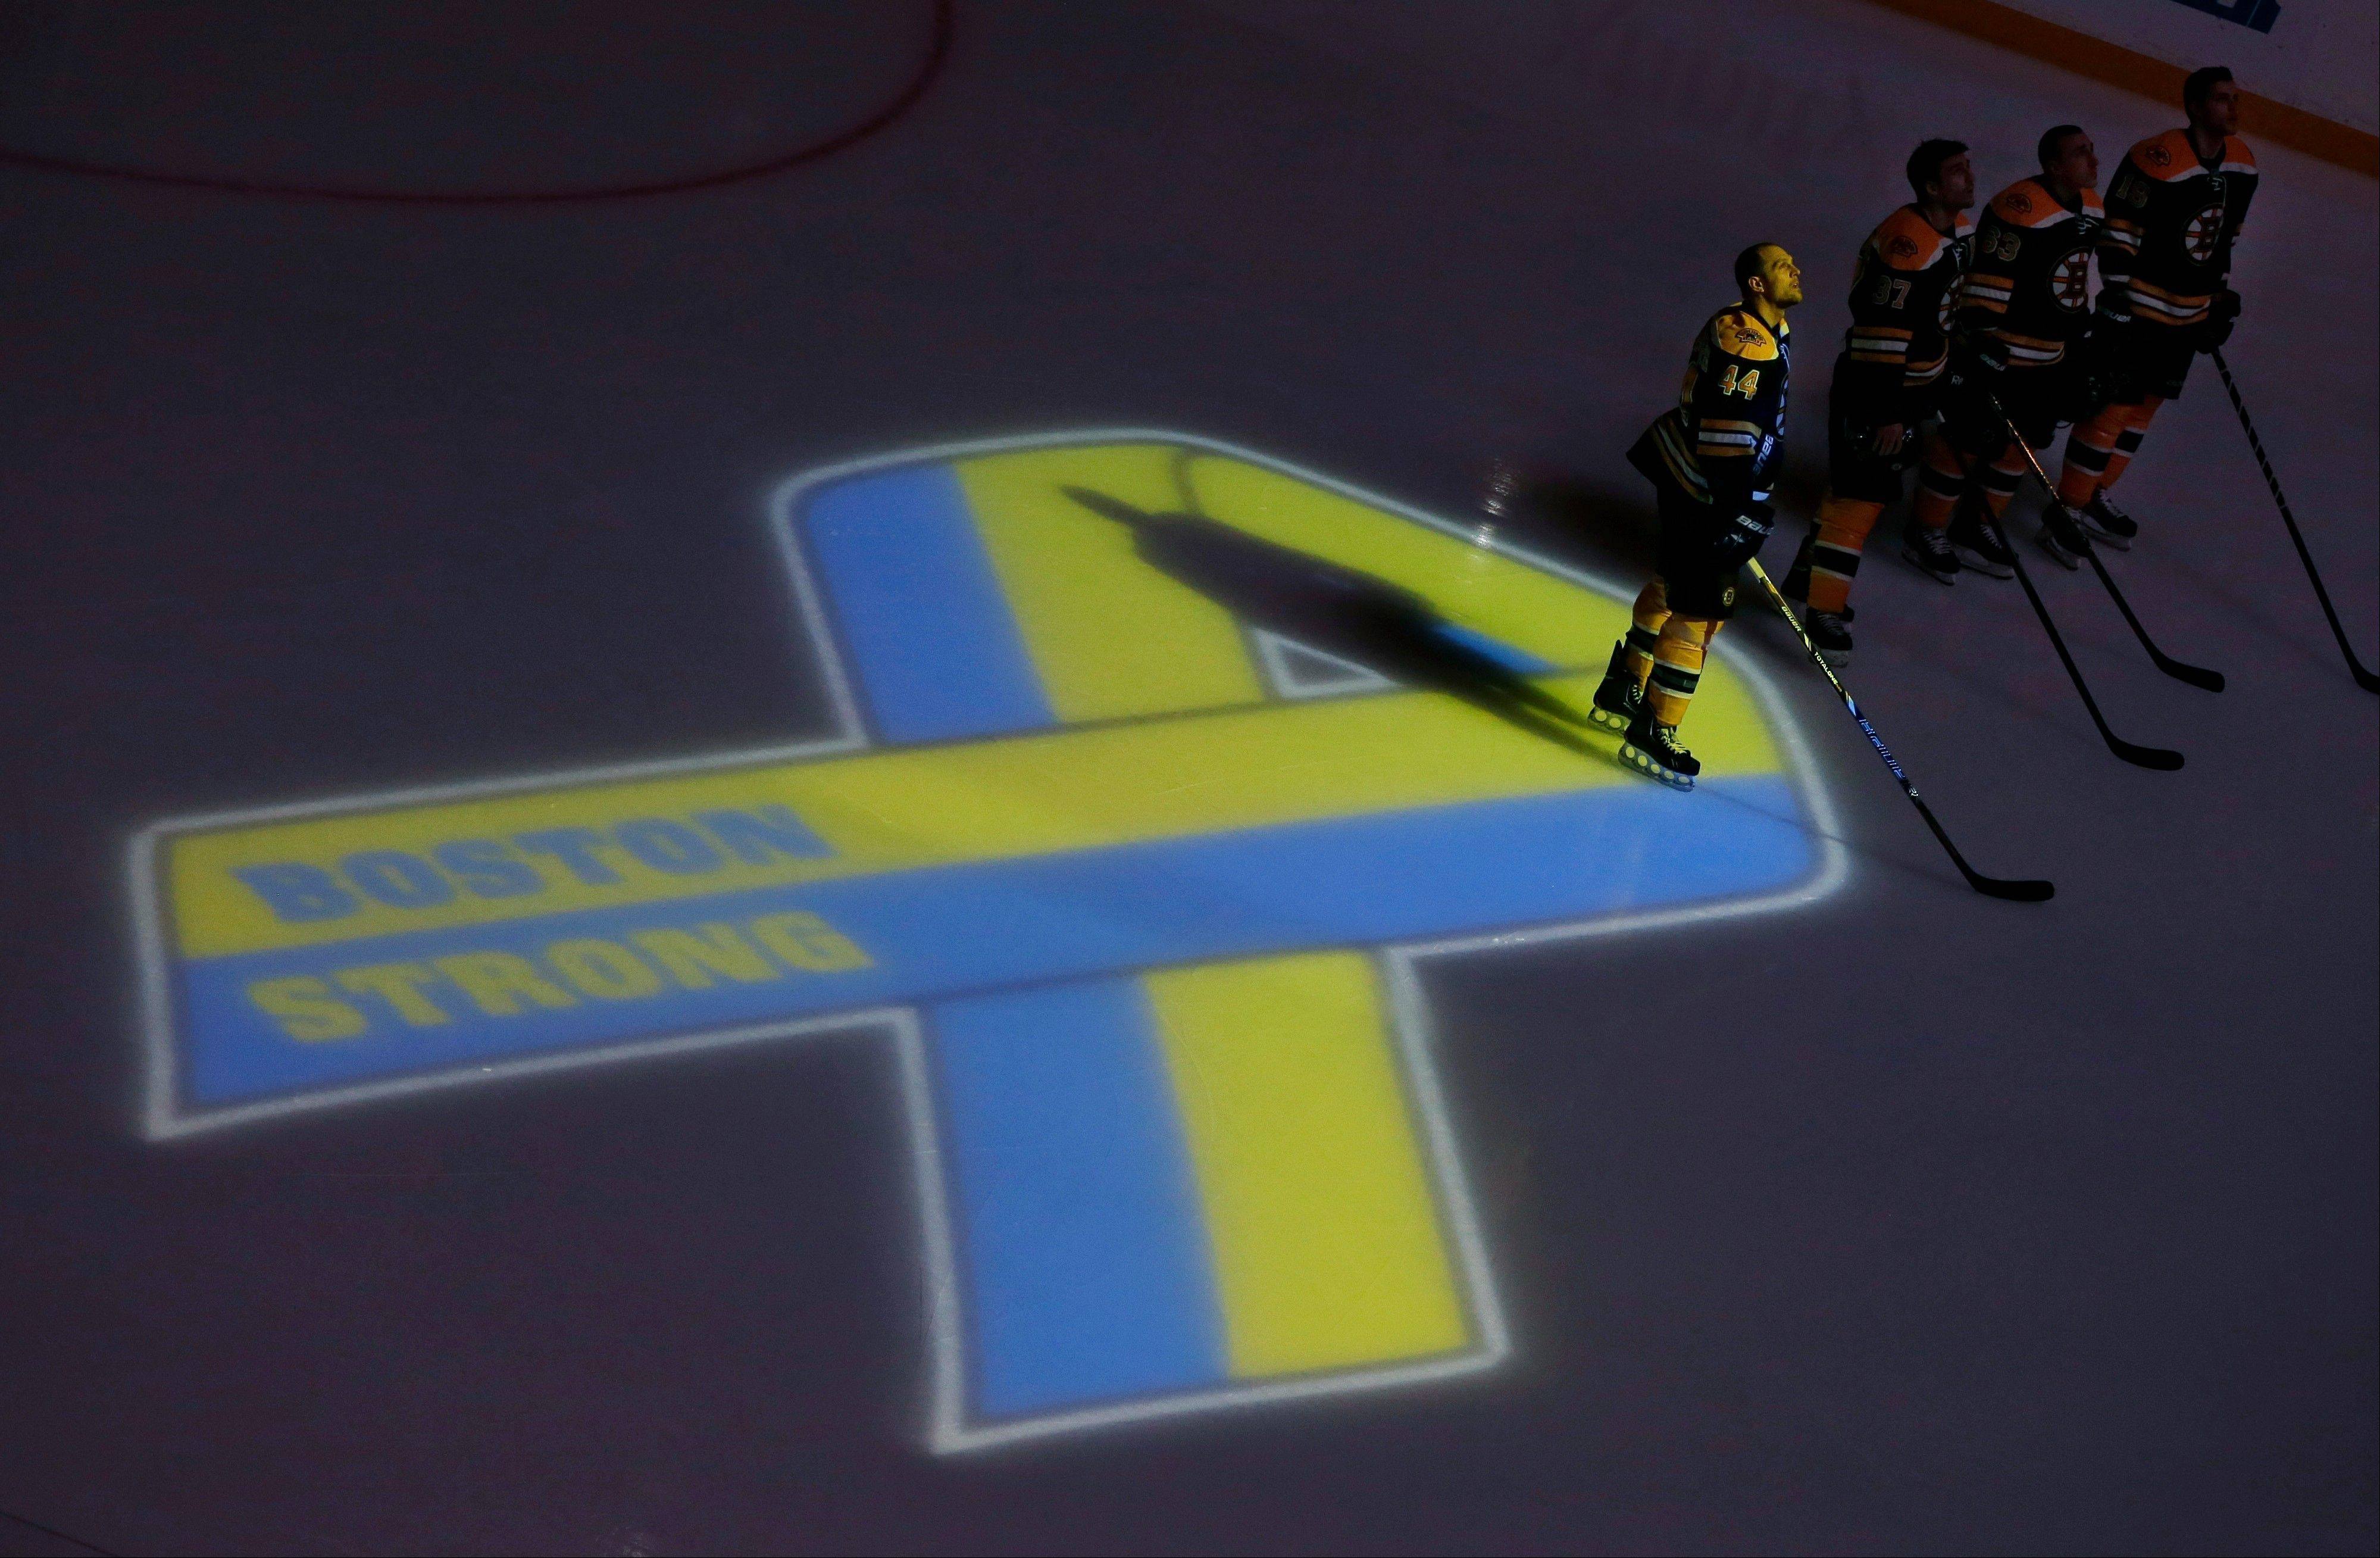 Boston Bruins hockey starters, including defenseman Dennis Seidenberg (44), stand next to a ribbon projected onto the ice at TD Garden in Boston, Wednesday, April 17, 2013, during a pregame ceremony in the aftermath of Monday's Boston Marathon bombings.